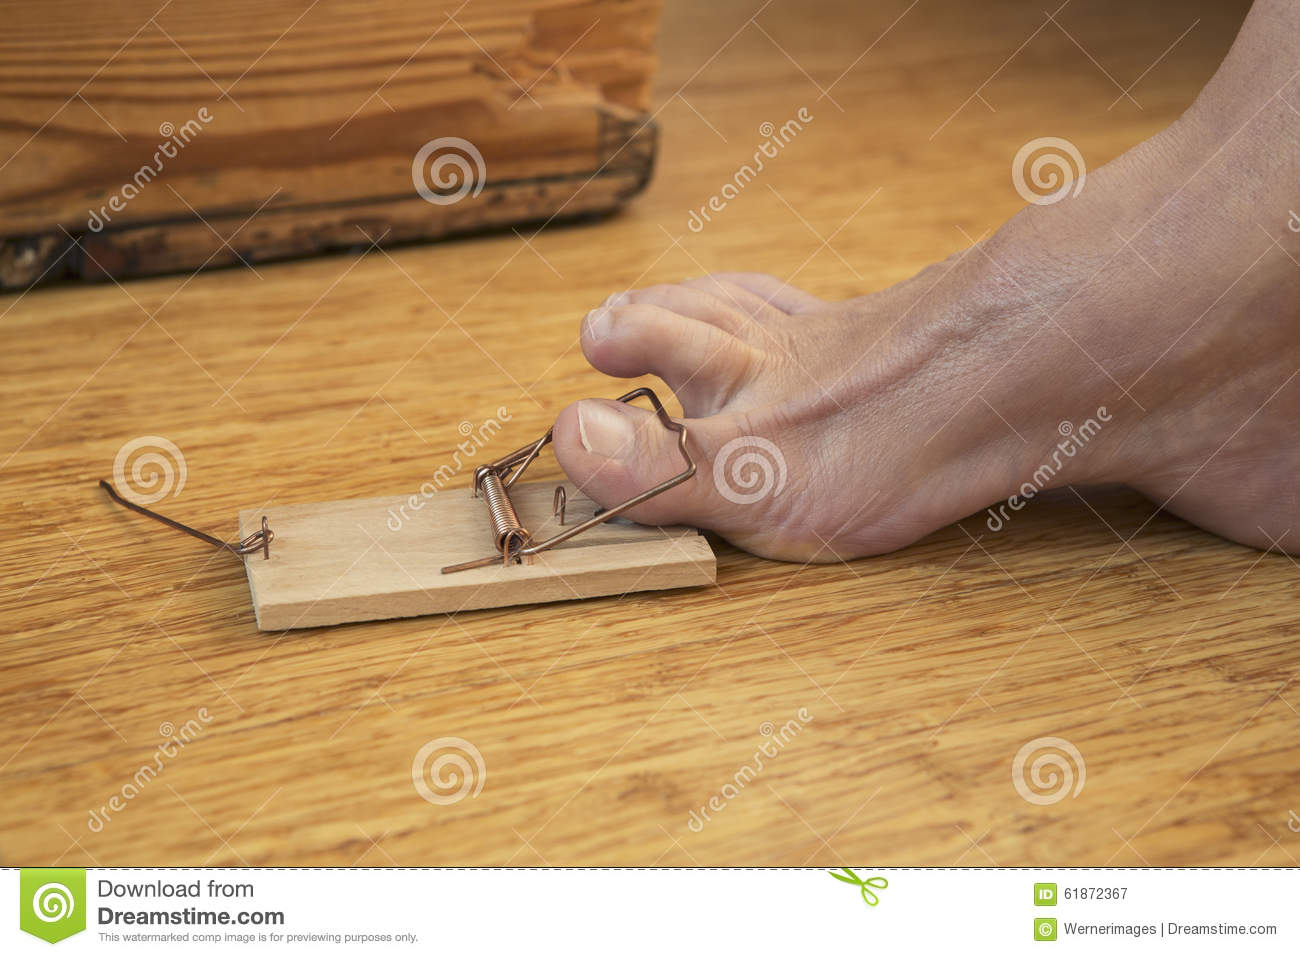 Toe caught in mousetrap stock photo image 61872367 for Hardwood floors hurt feet